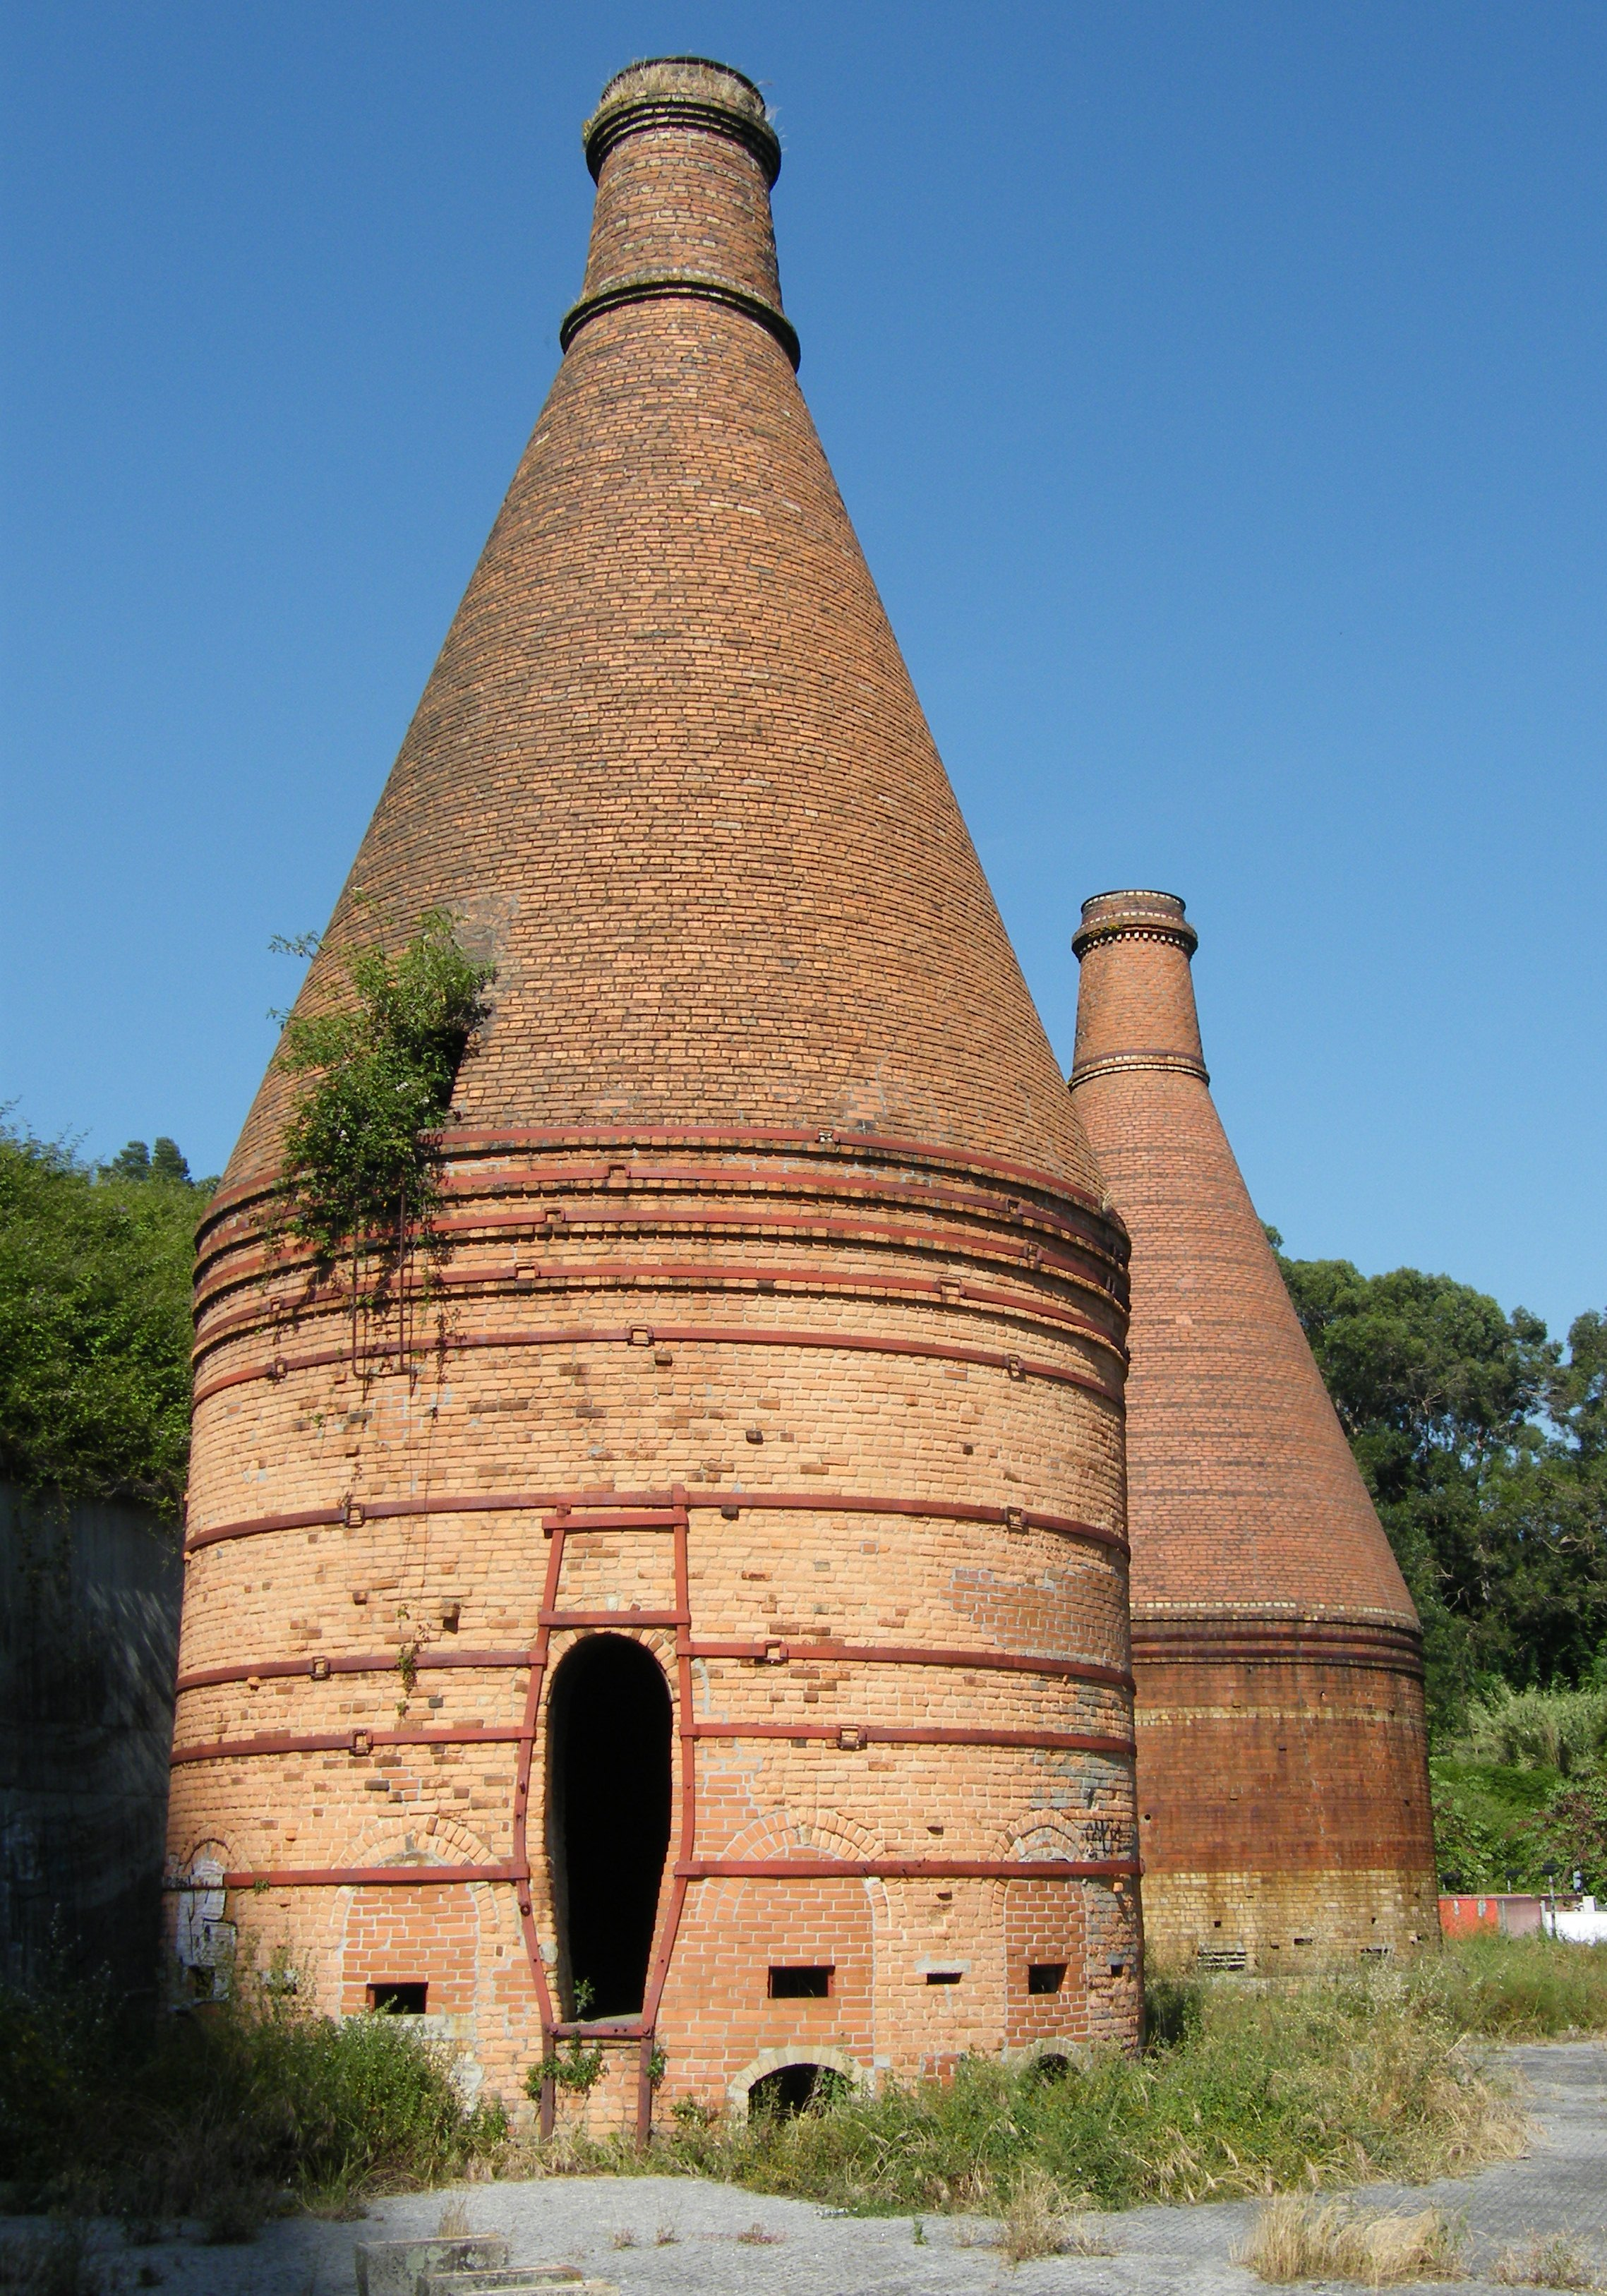 Bottle kilns of the former Massarelos tile factory in Porto